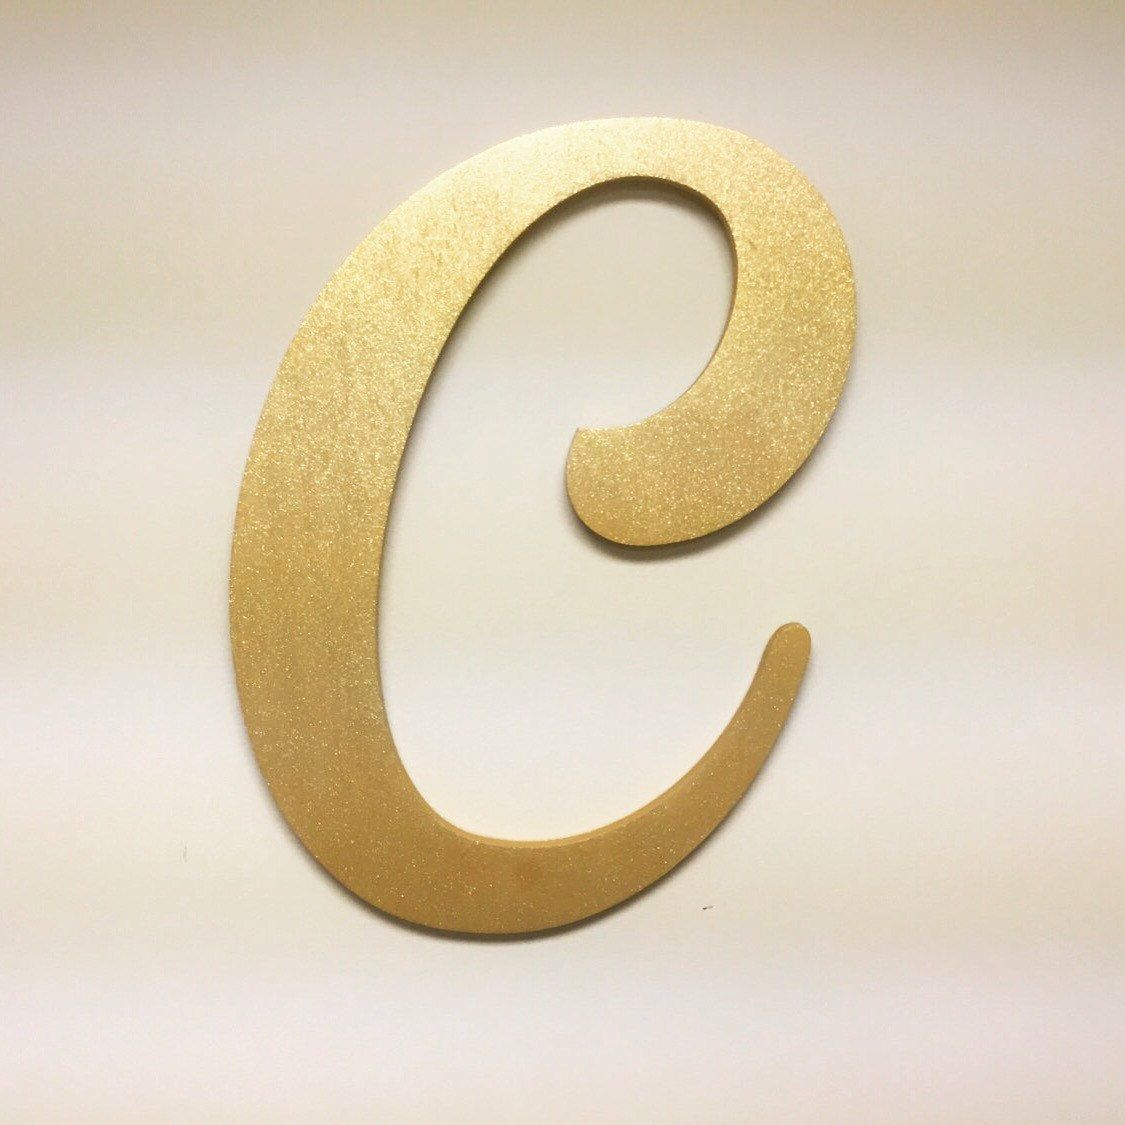 Letter C Wall Hanging | Wall Plate Design Ideas